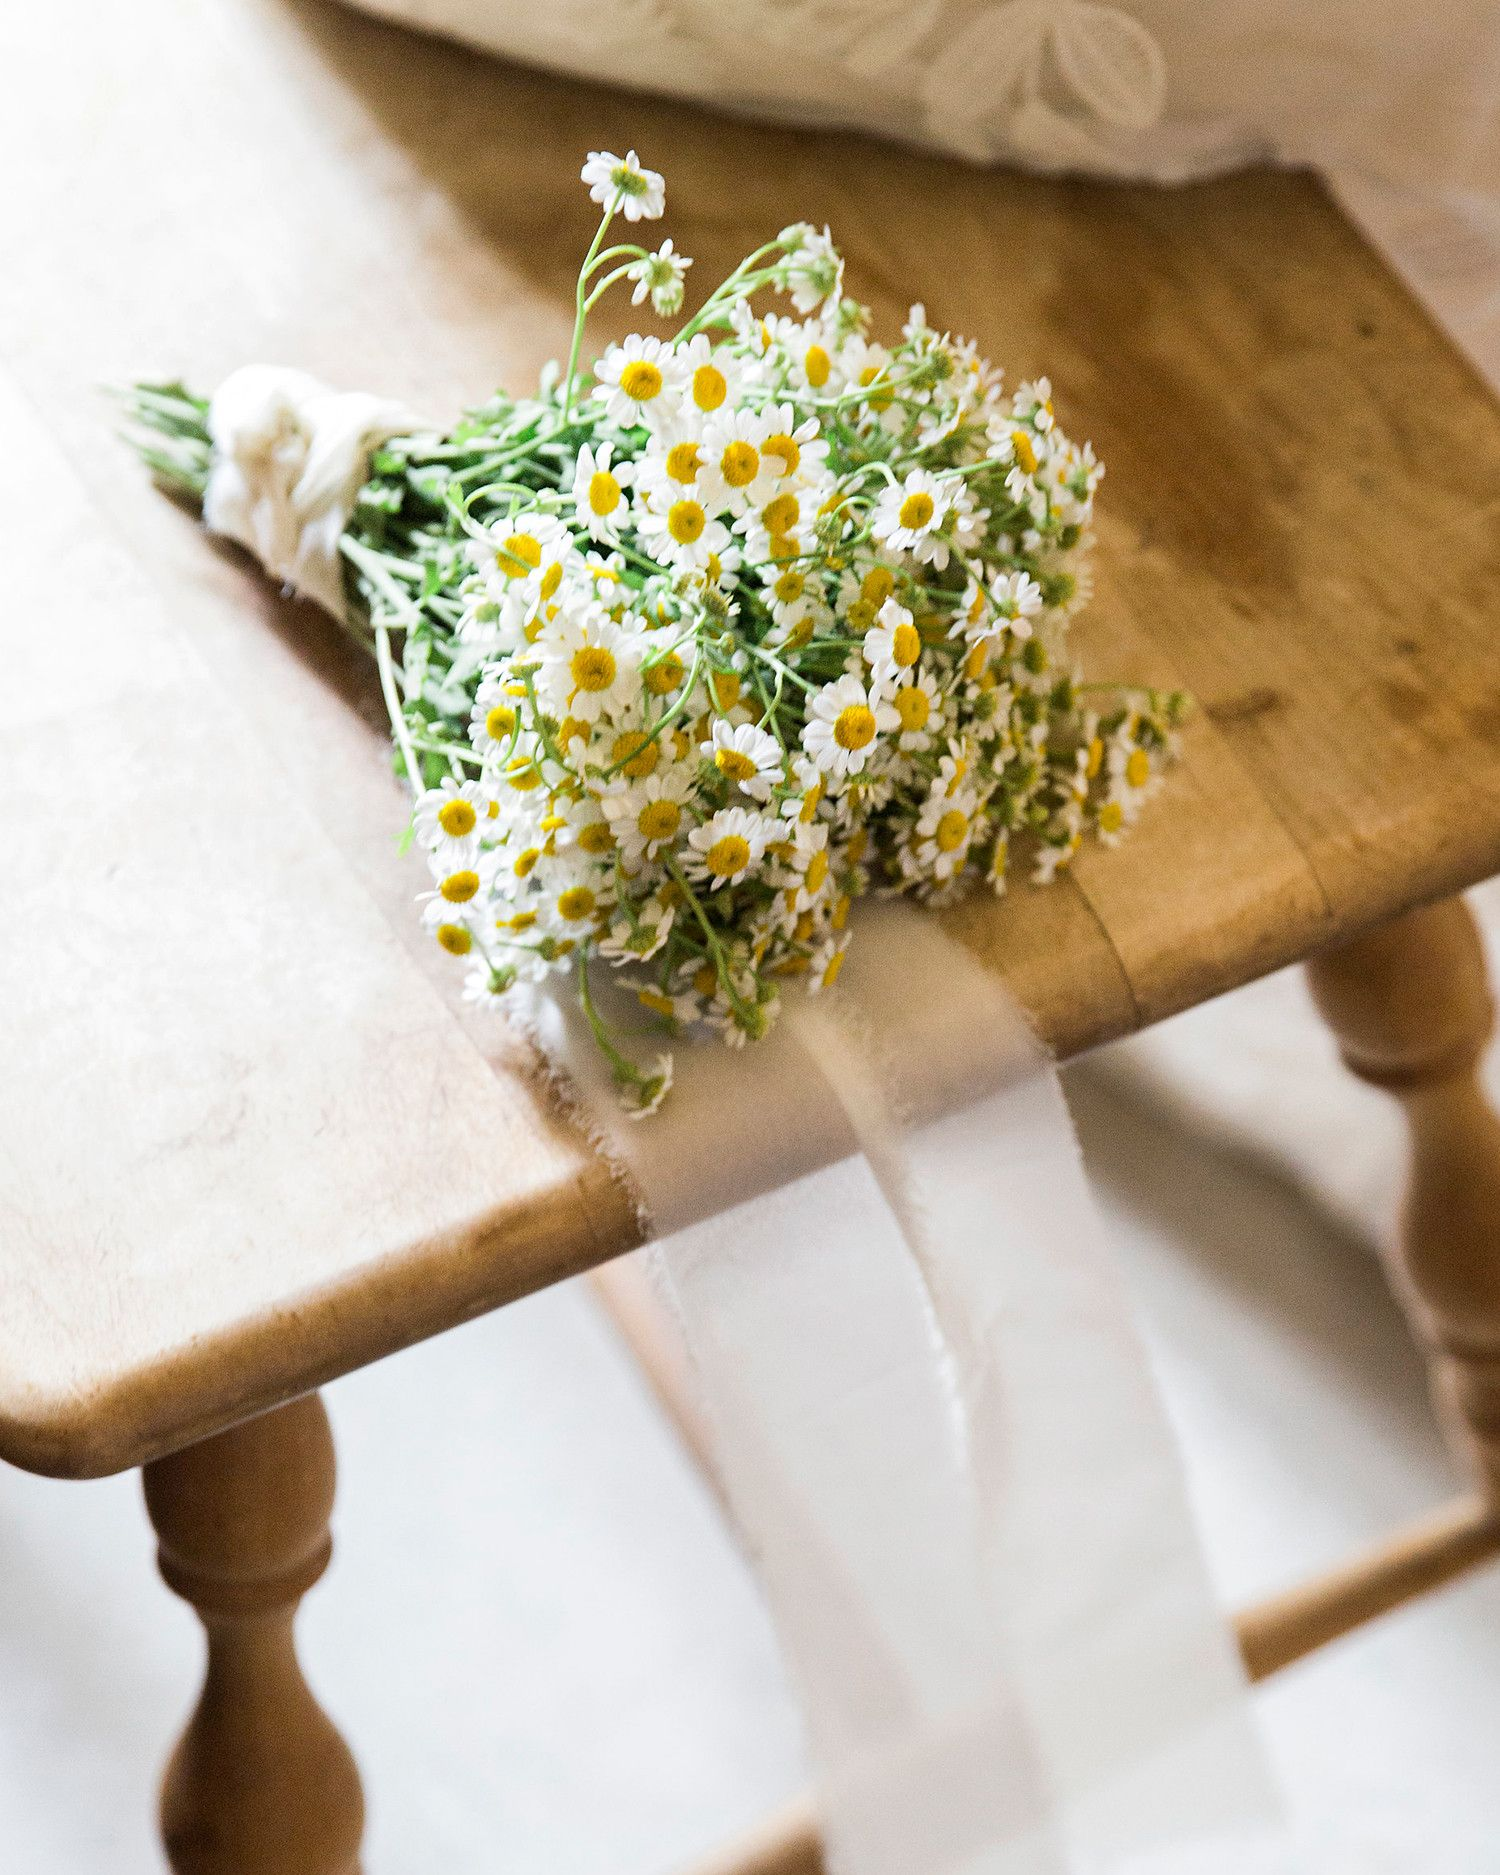 similar to hot potato or musical chairs this activity involves passing a bouquet like this one by yonder floral decor house around as tunes play